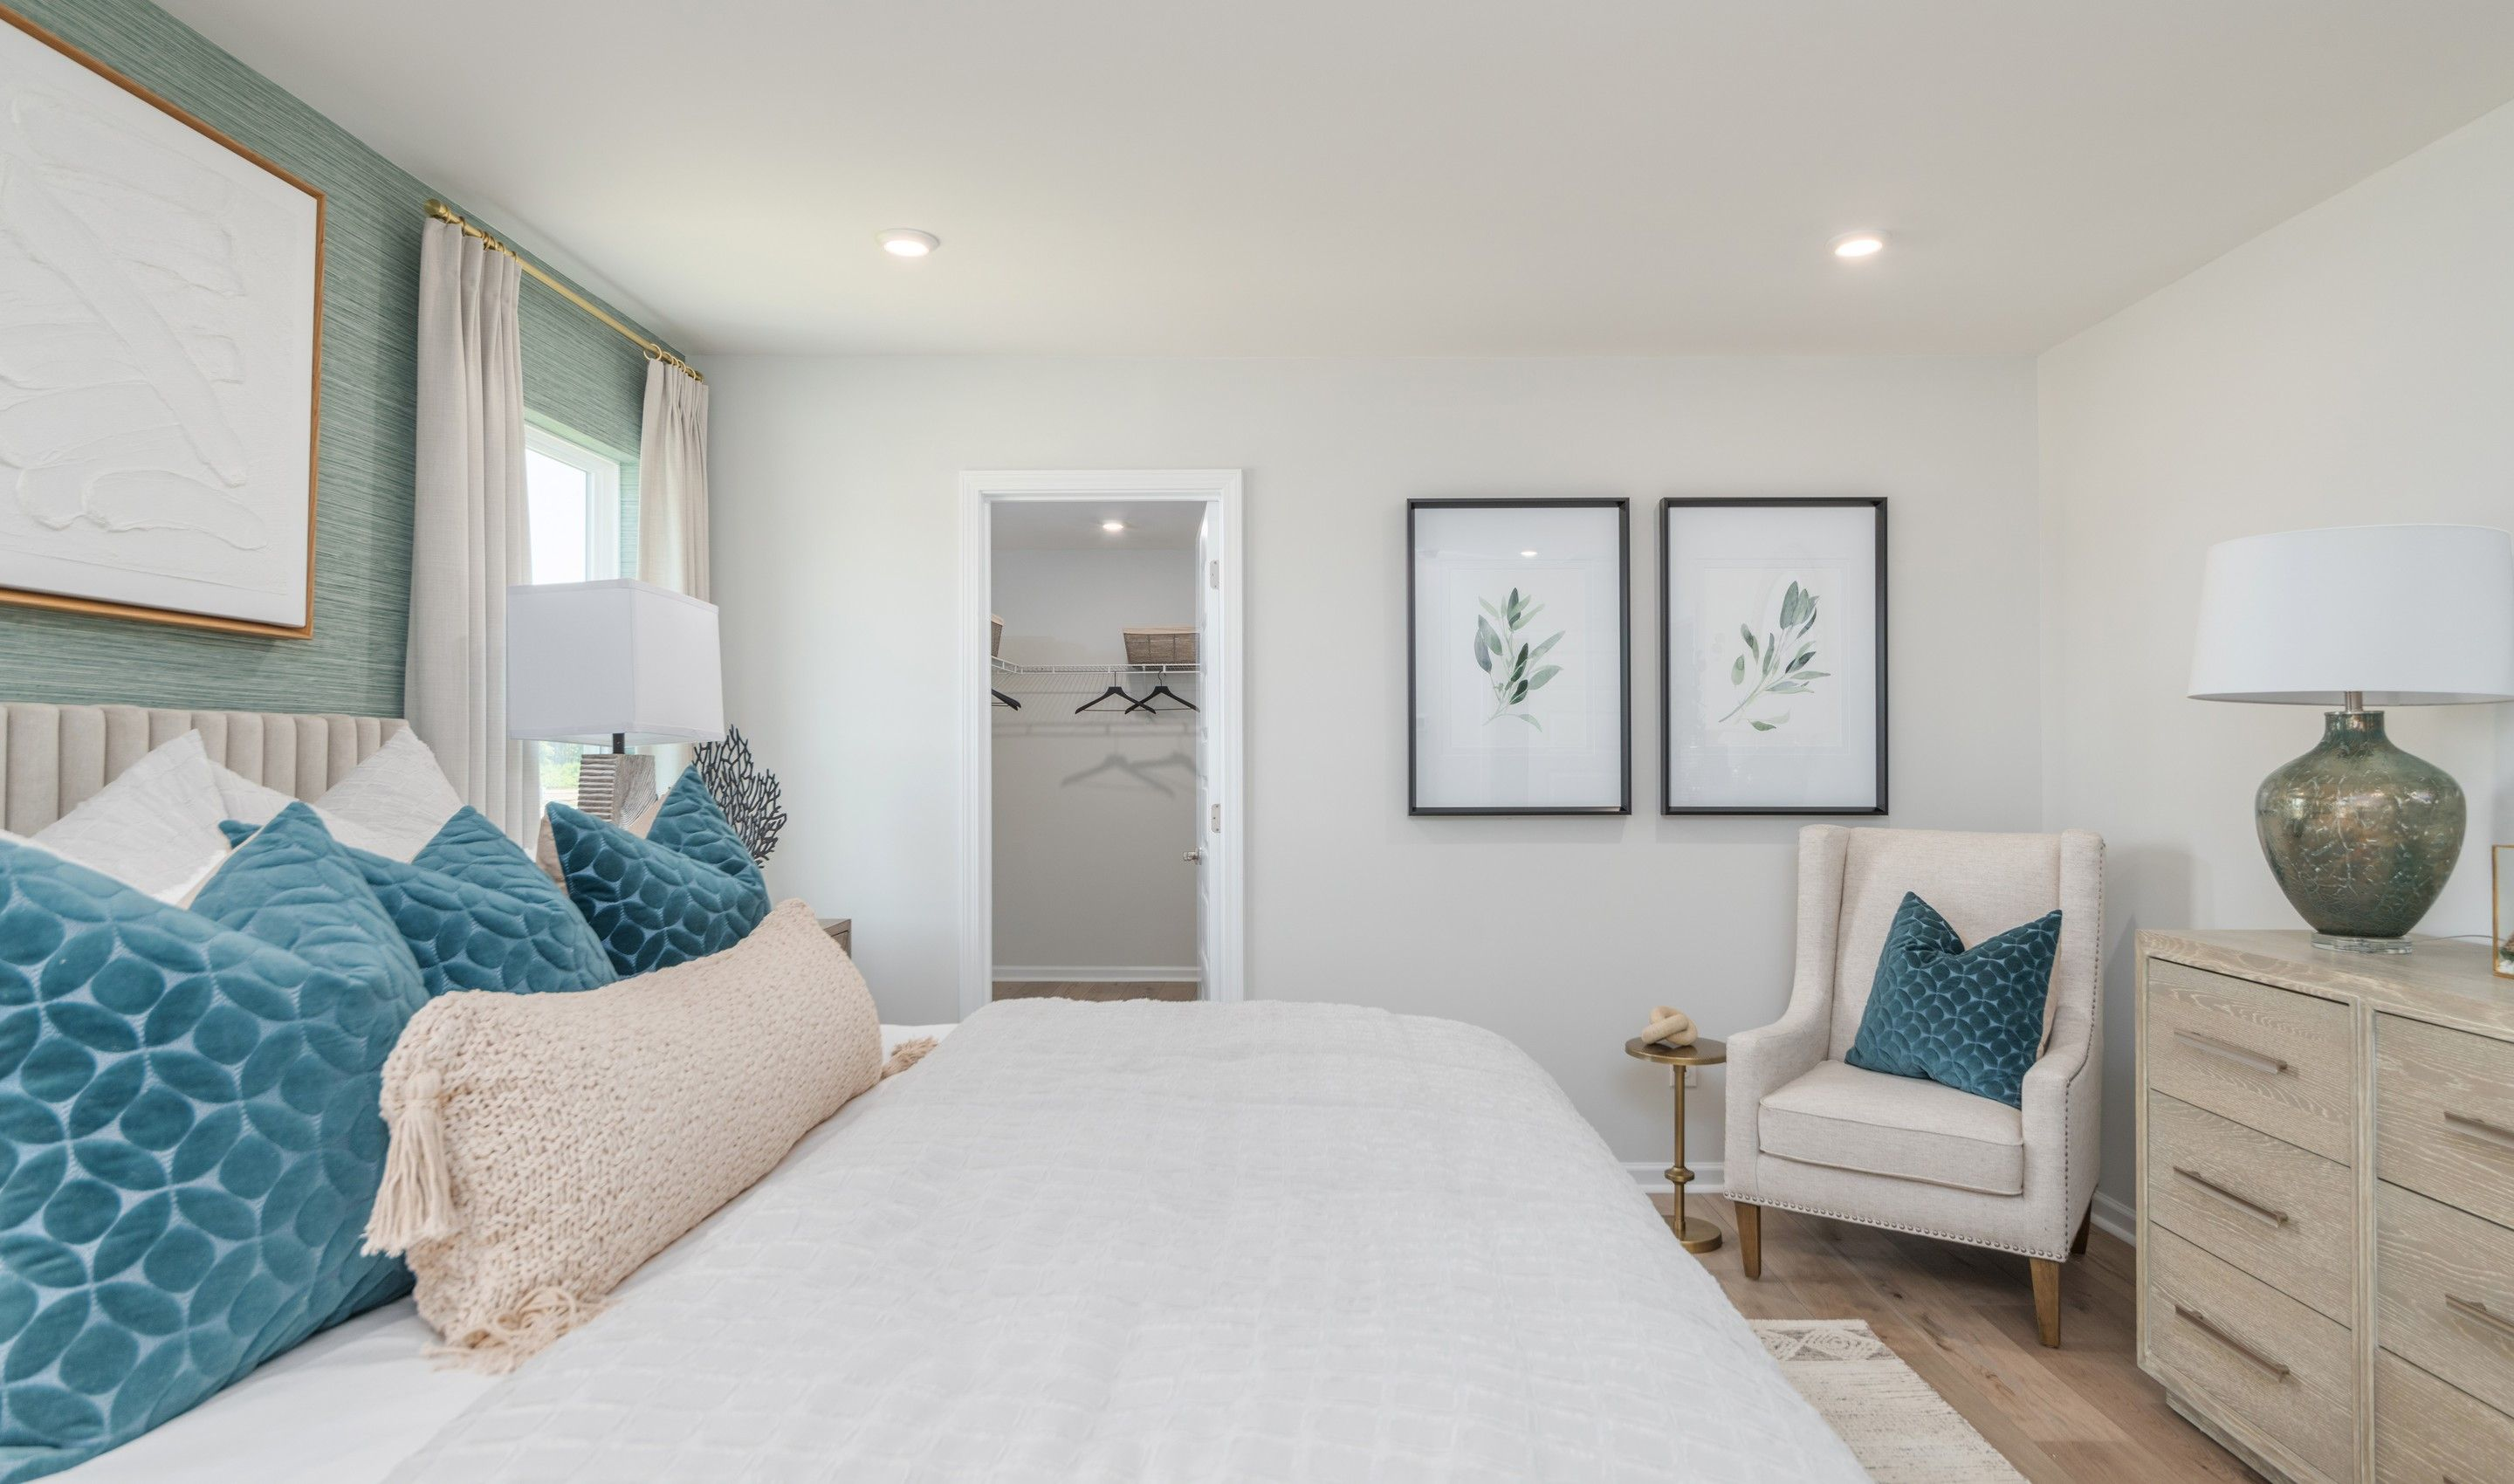 Bedroom featured in the Colton II By K. Hovnanian® Homes in Hilton Head, SC